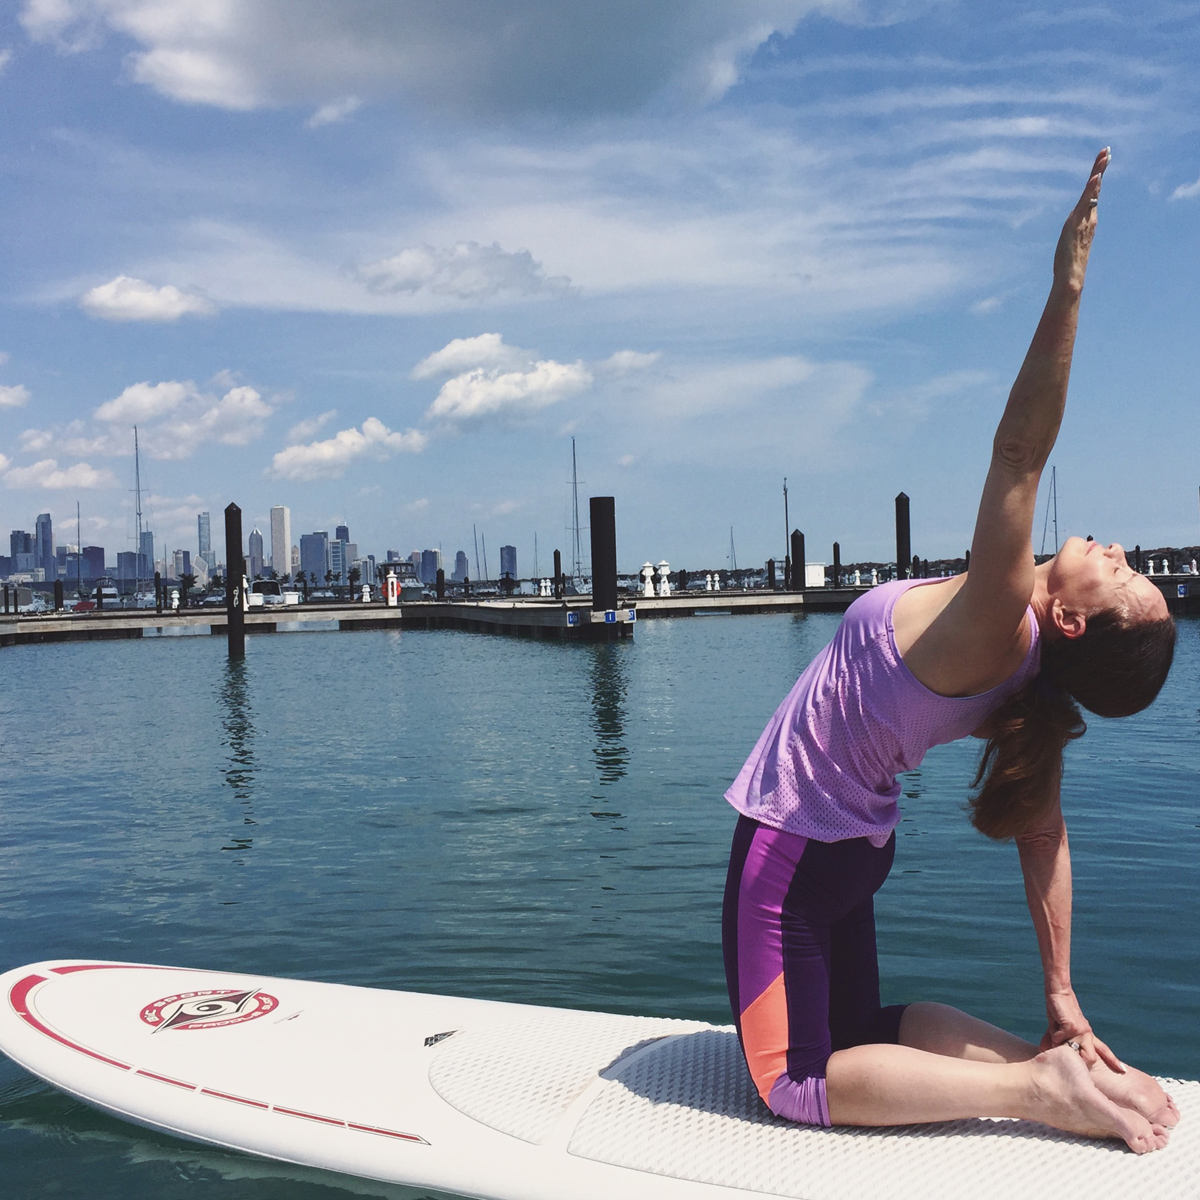 Take a private SUP yoga lesson